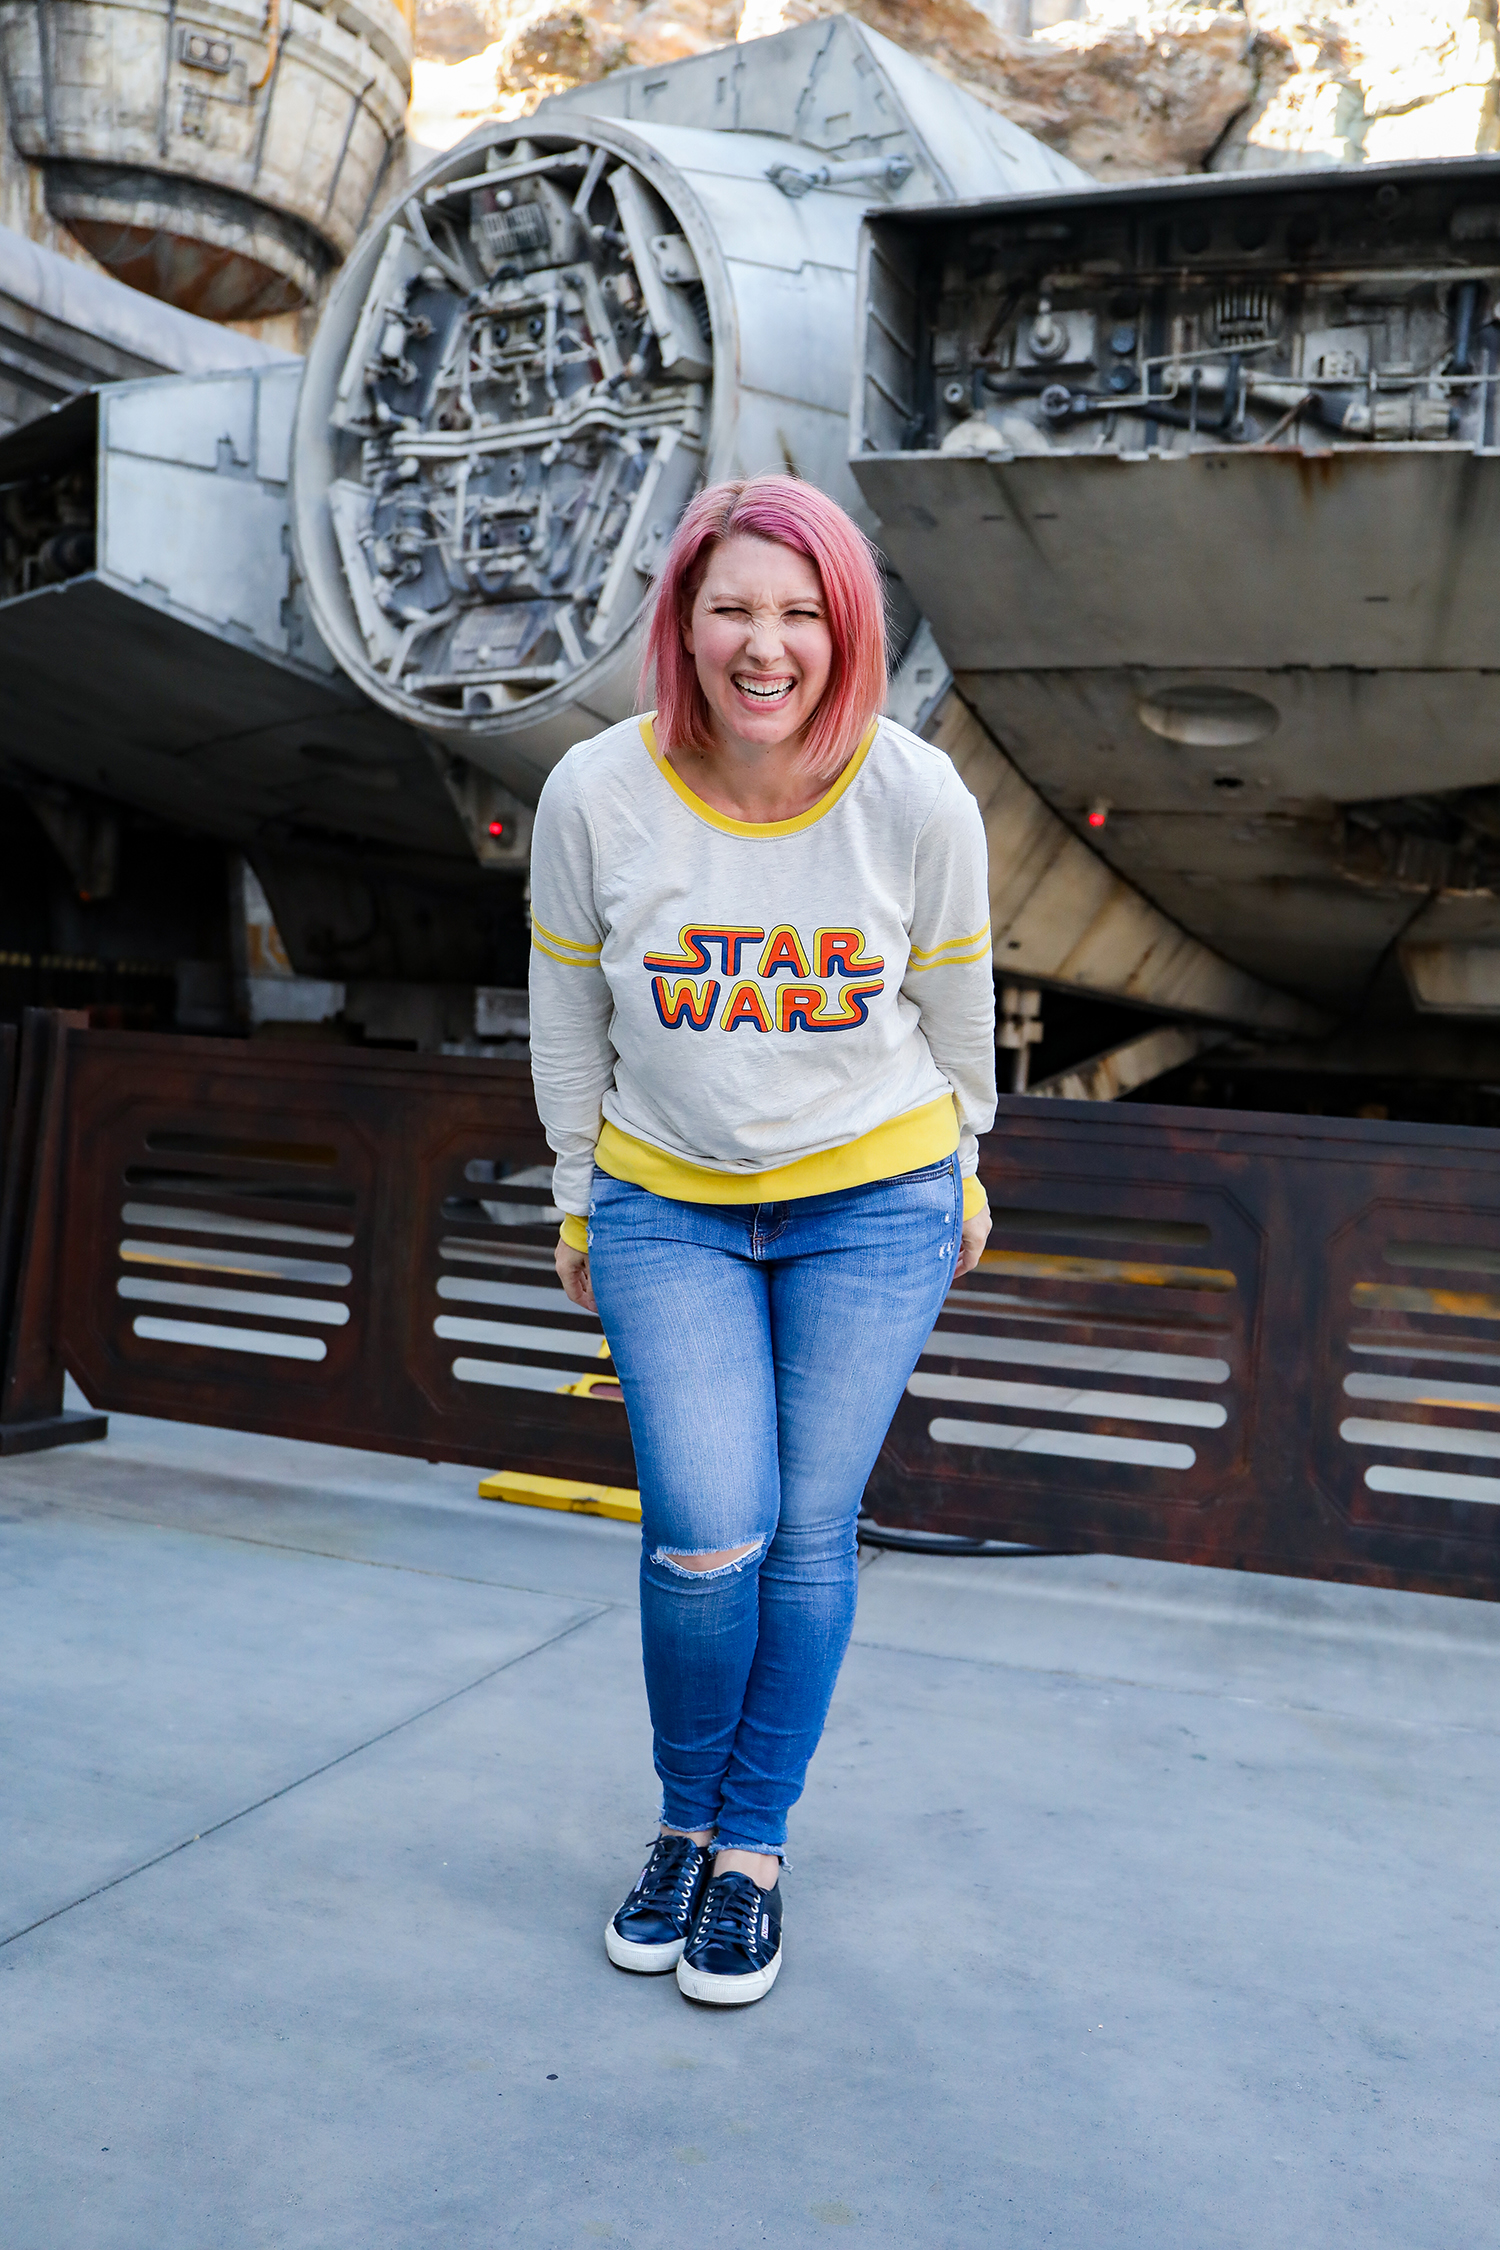 Star Wars Land: This is the ultimate guide, and will totally help you choose what to prioritize during your first visit!